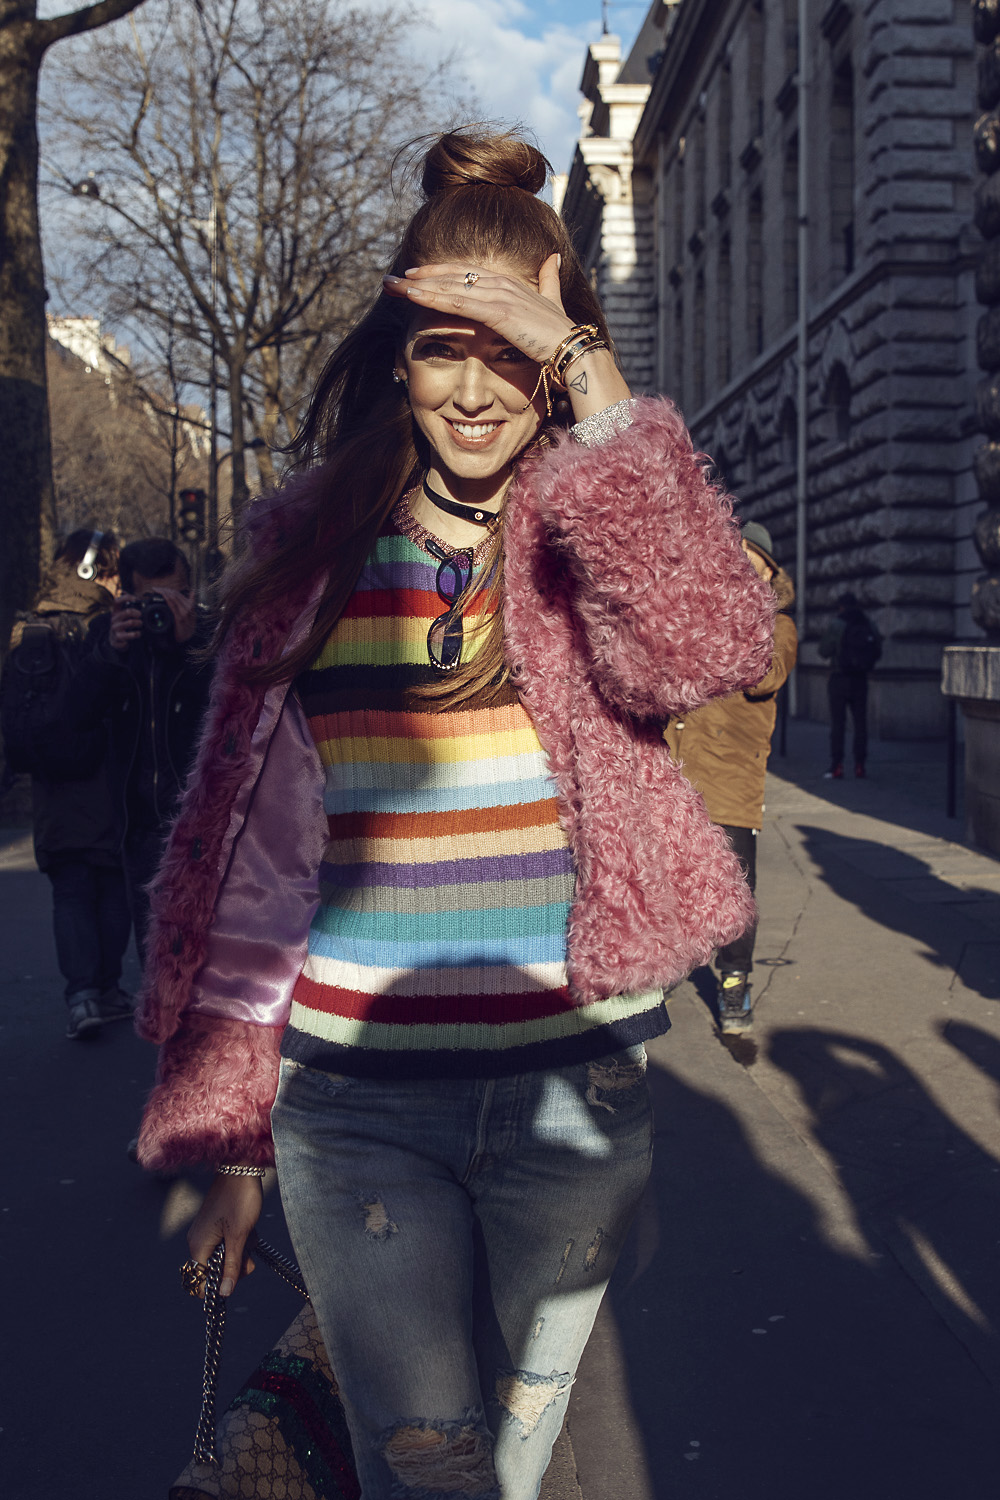 Colors, Sun, Beautiful Smiles And Chiara Ferragni In Paris